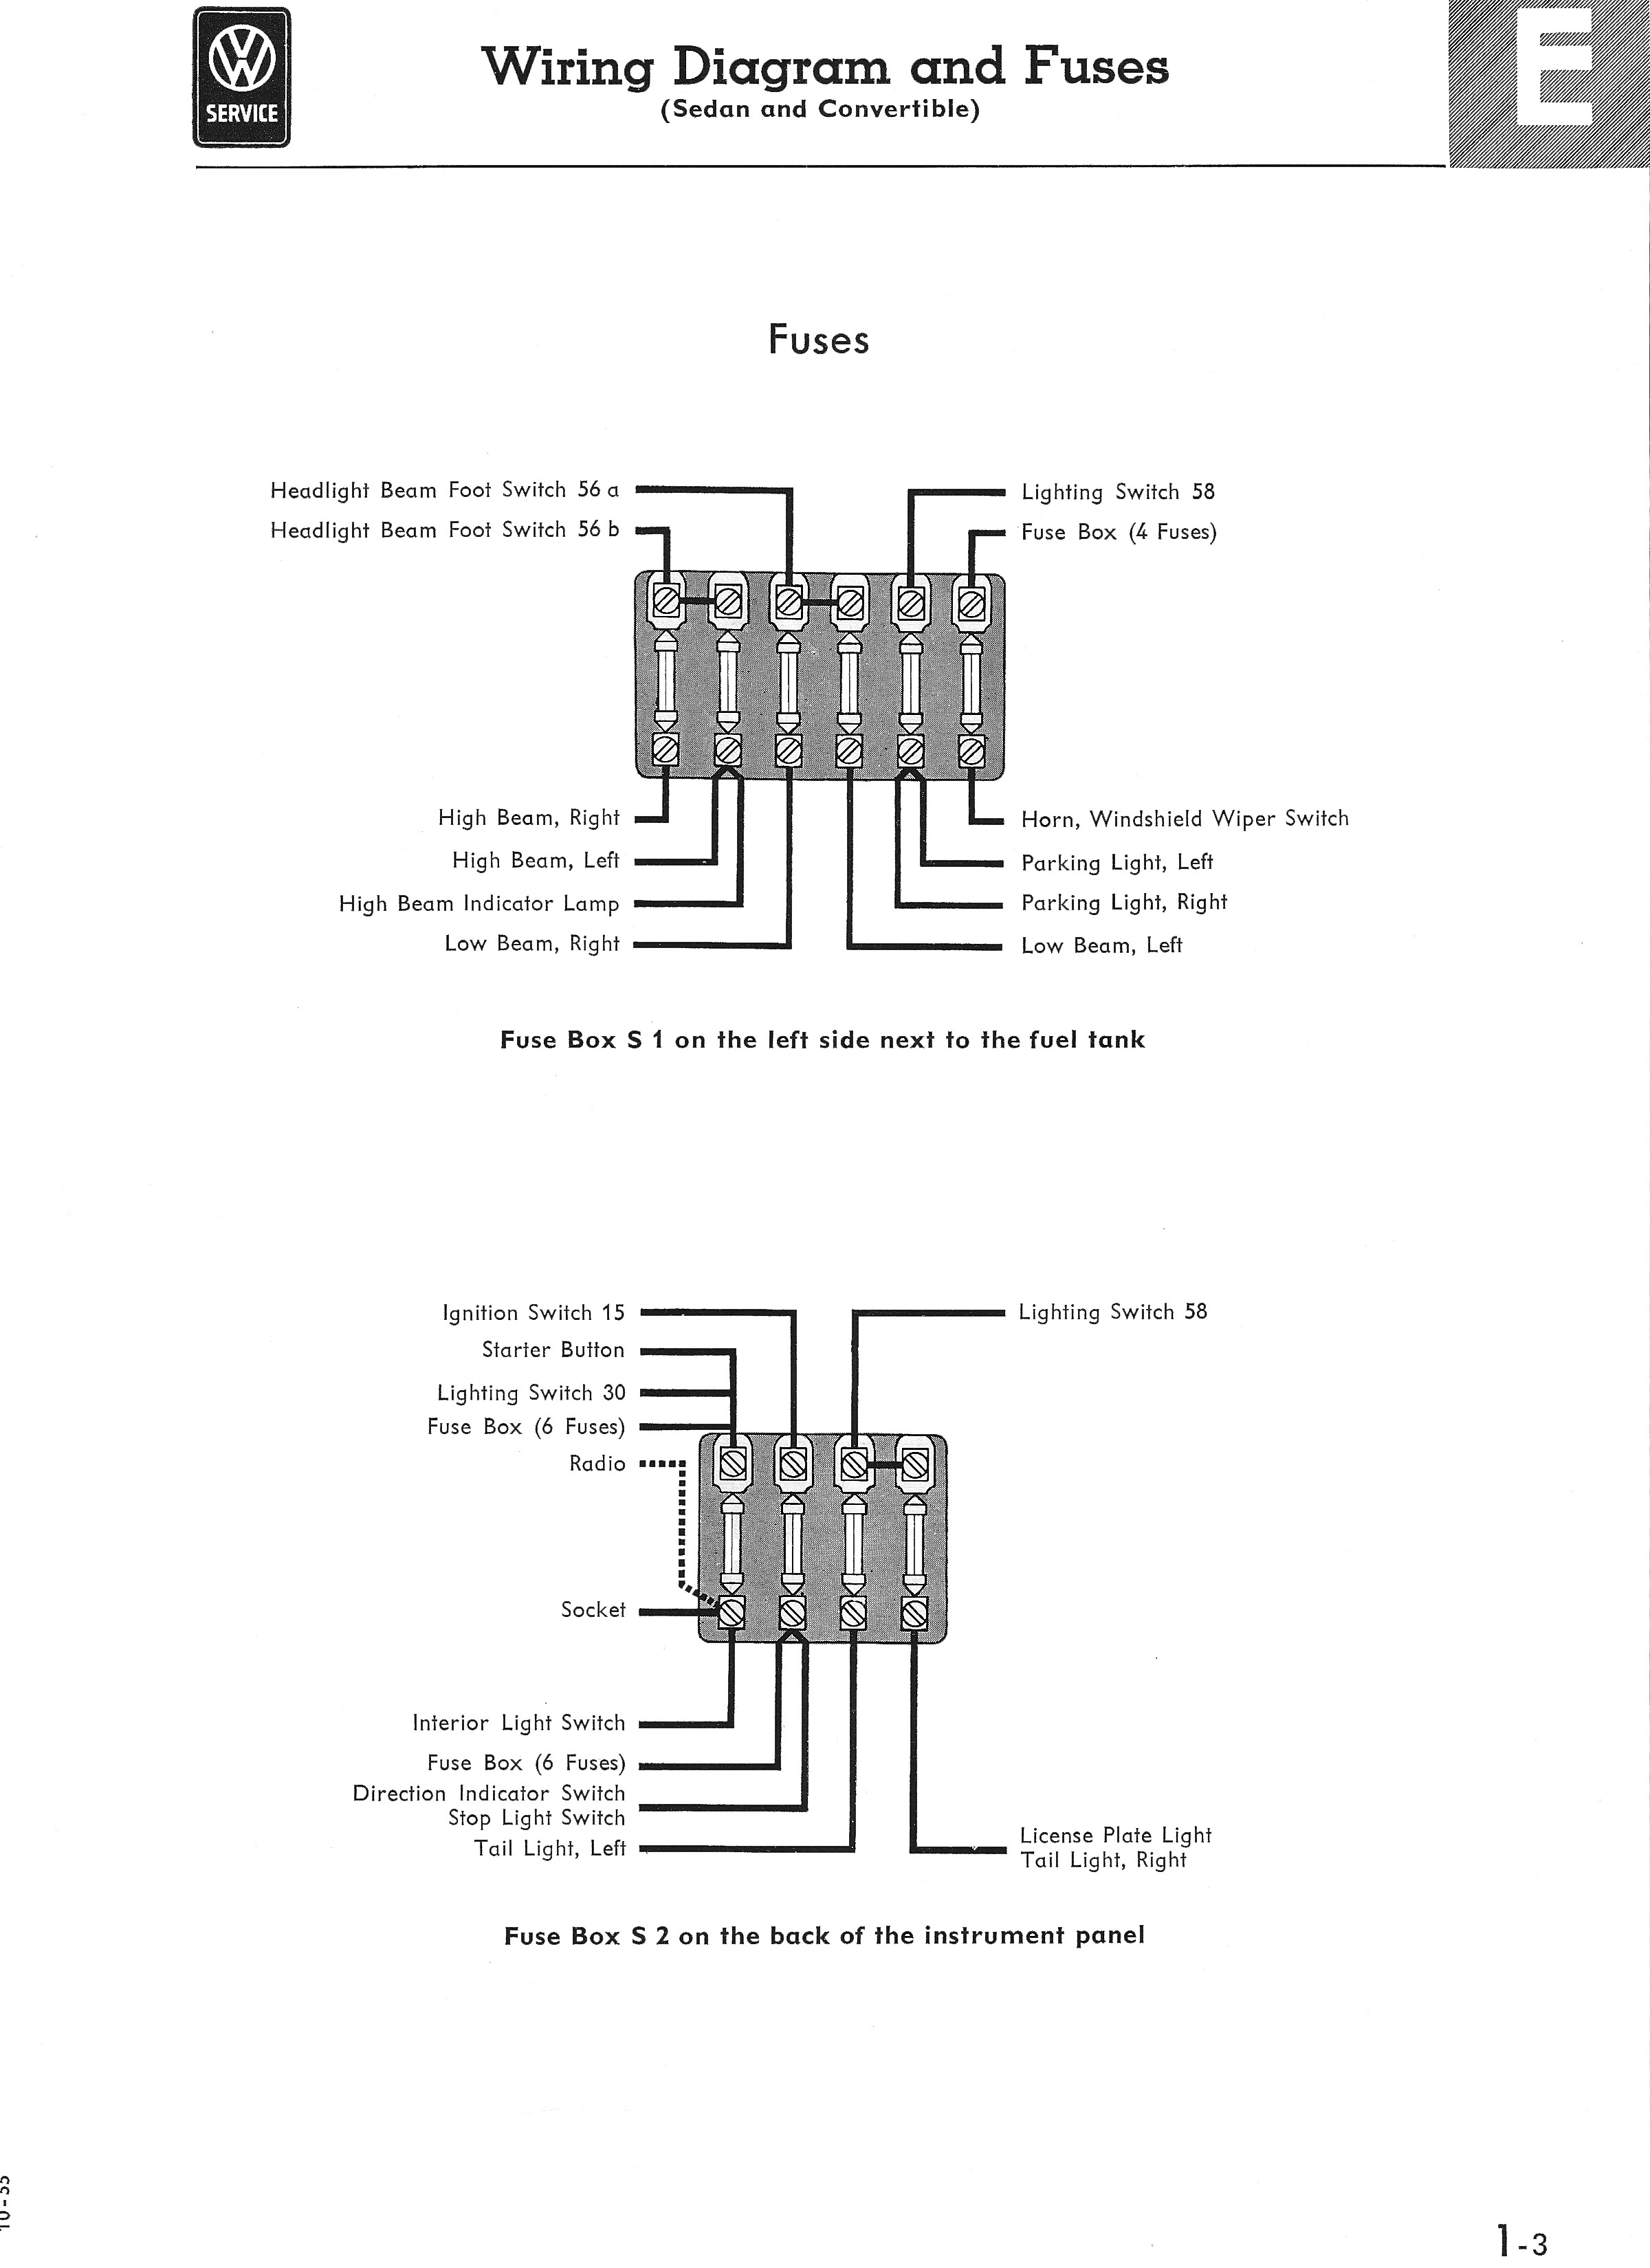 2010 Vw Cc Fuse Box Diagram